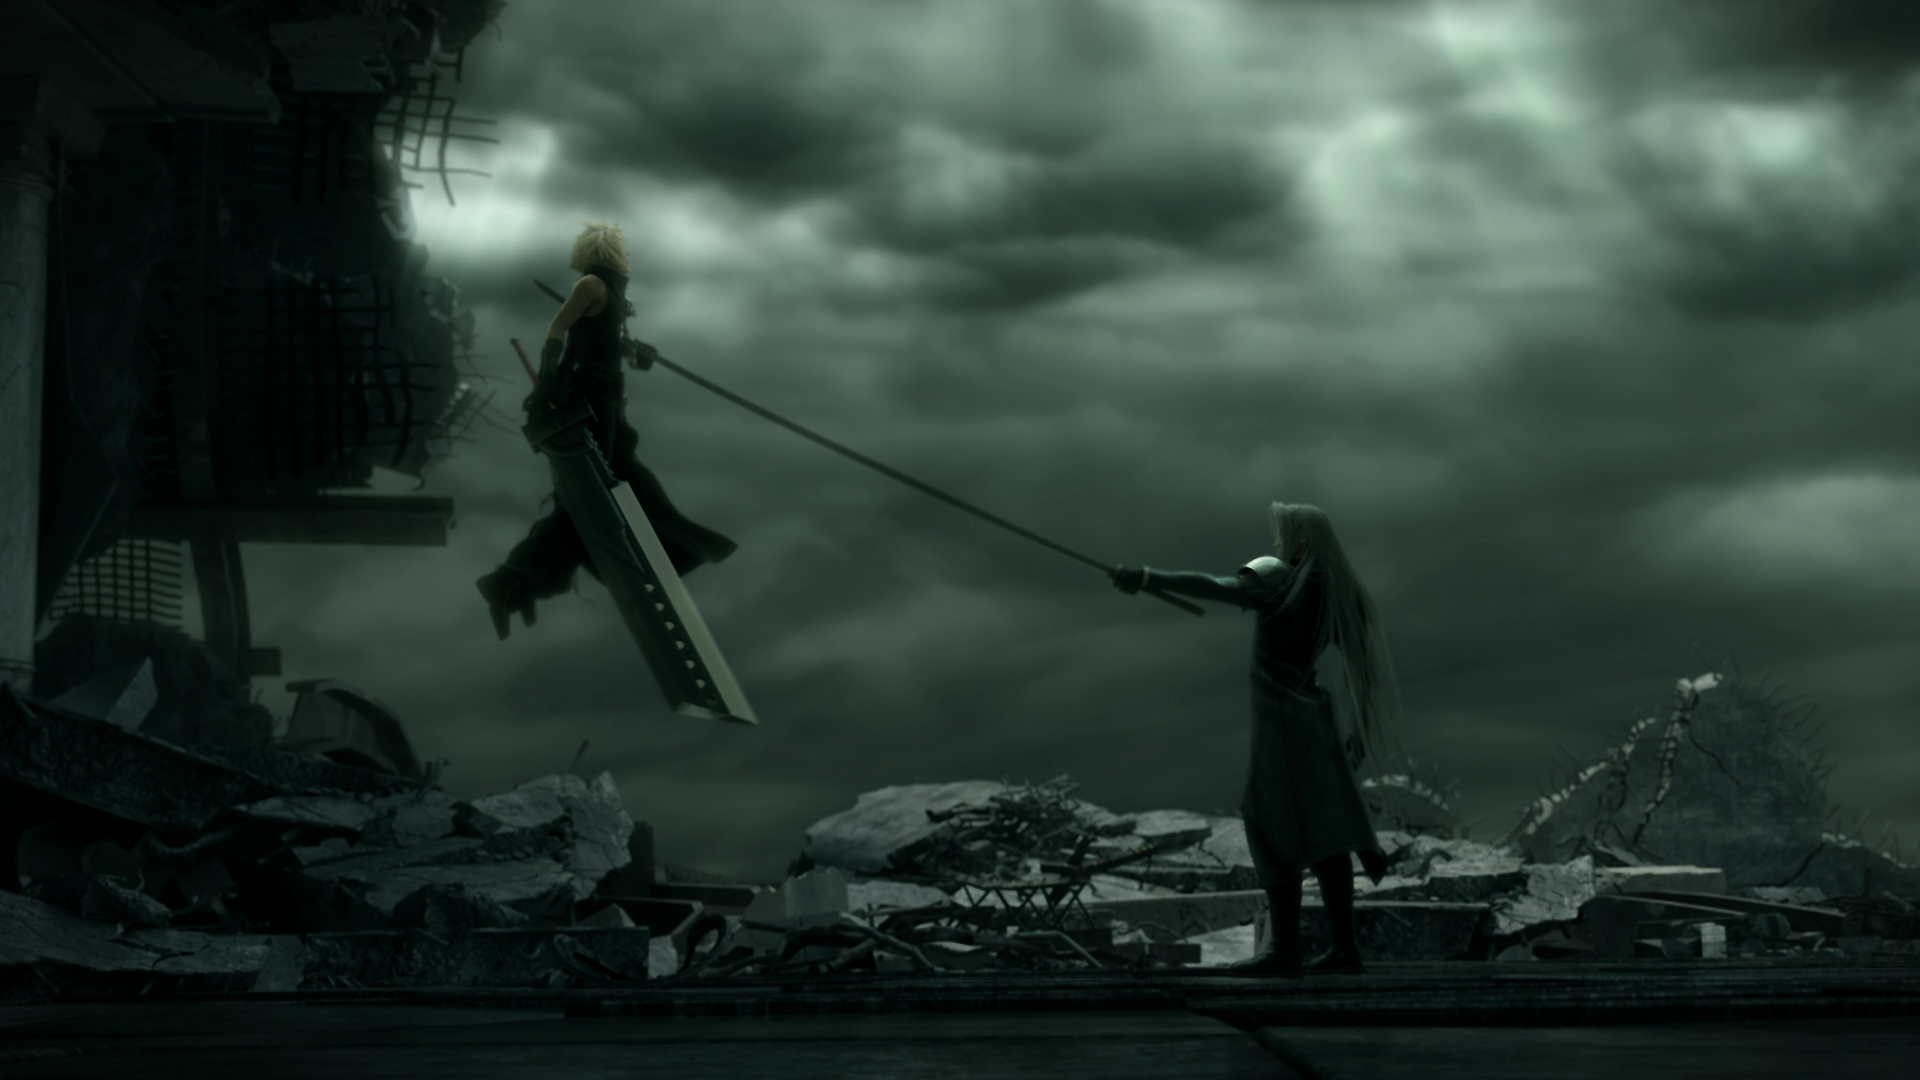 ff7 advent children bahamut - photo #37